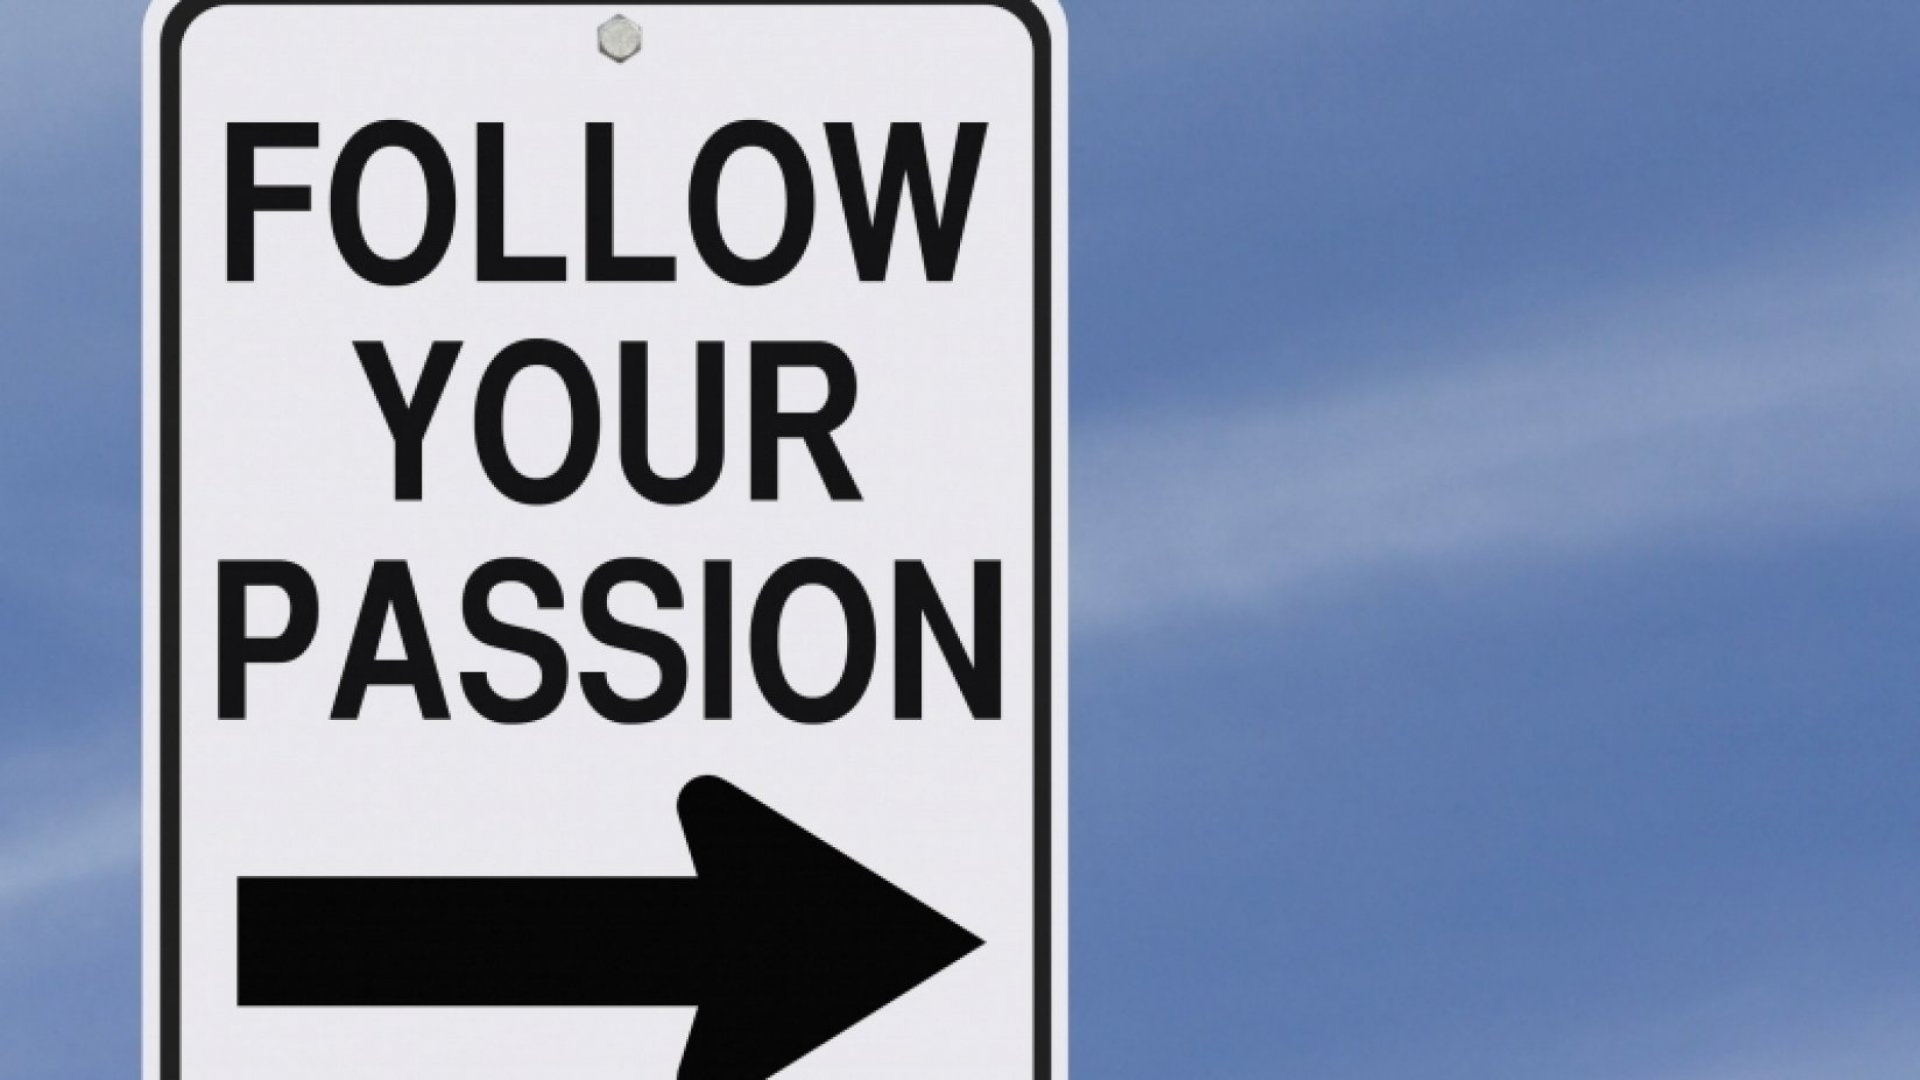 The Powerful Effect of Integrating Your Passions Into Your Work